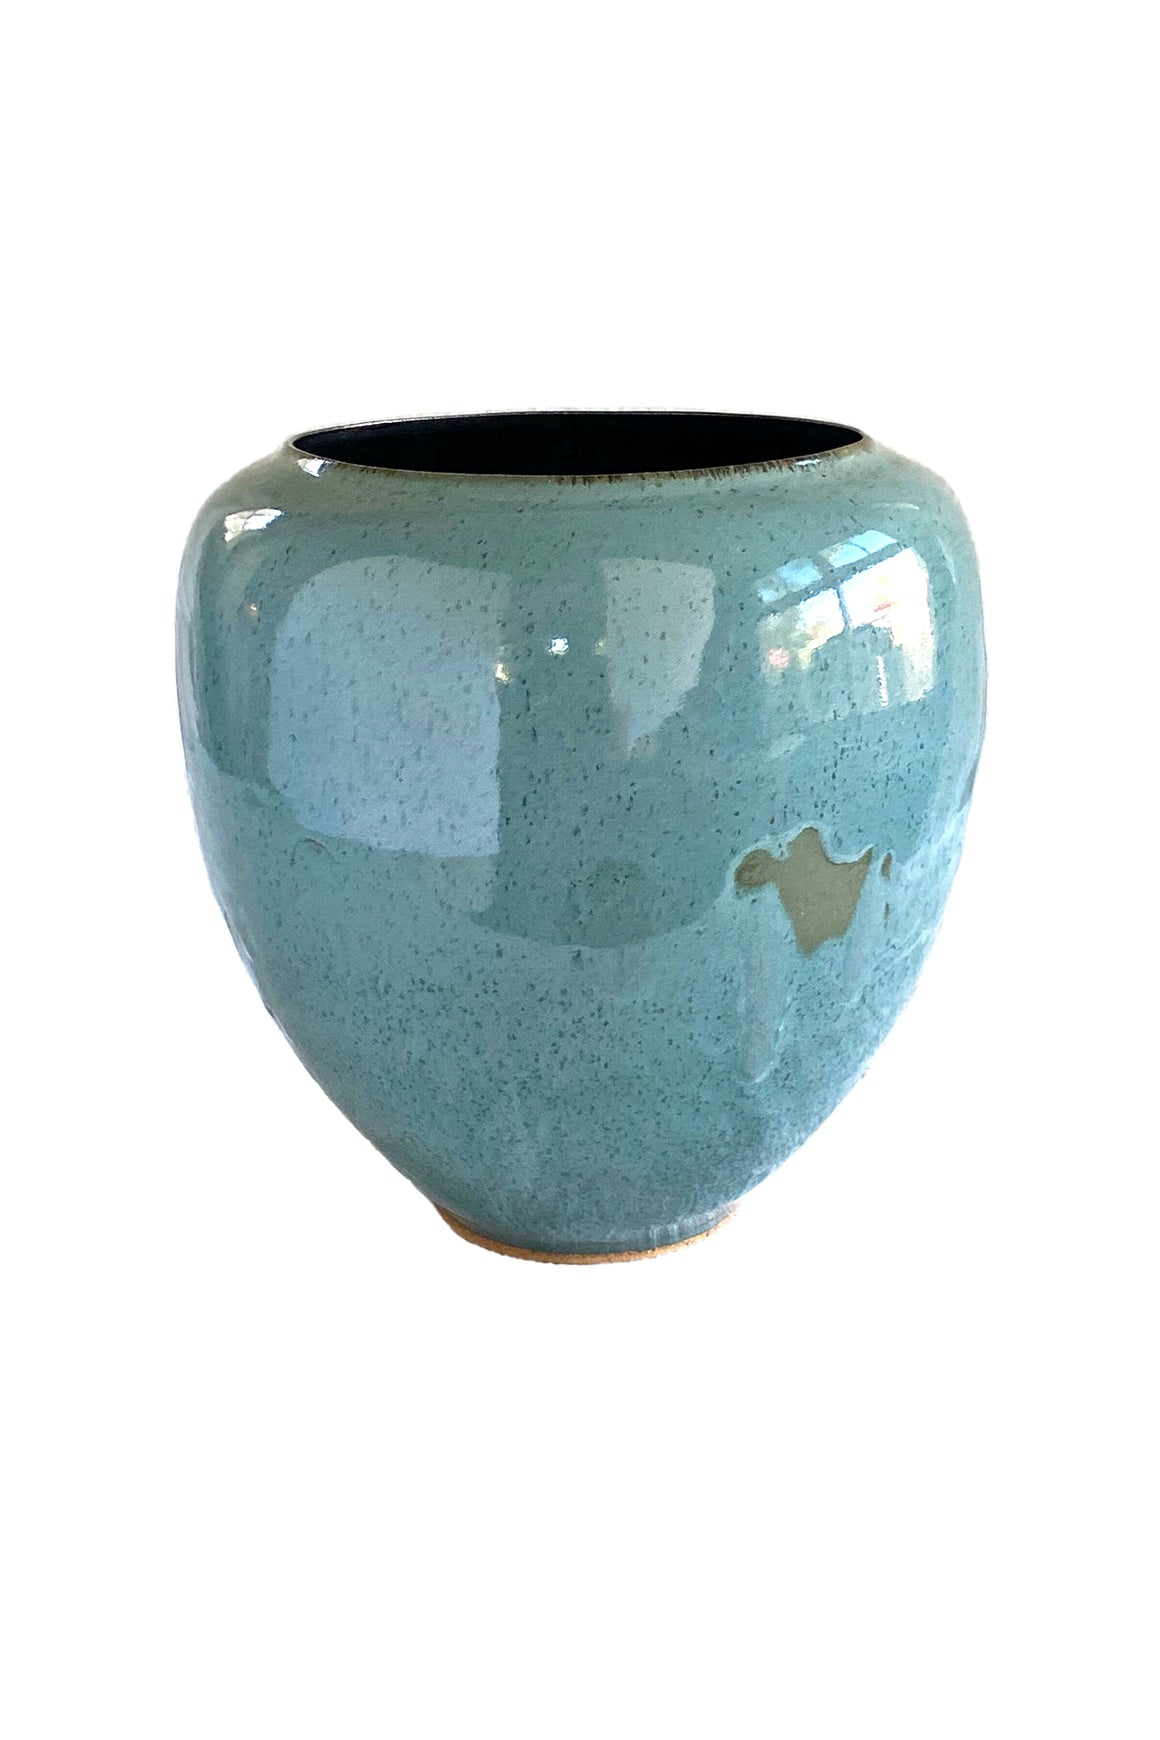 Tourmaline #5 Ceramic Vessel by Thom Lussier